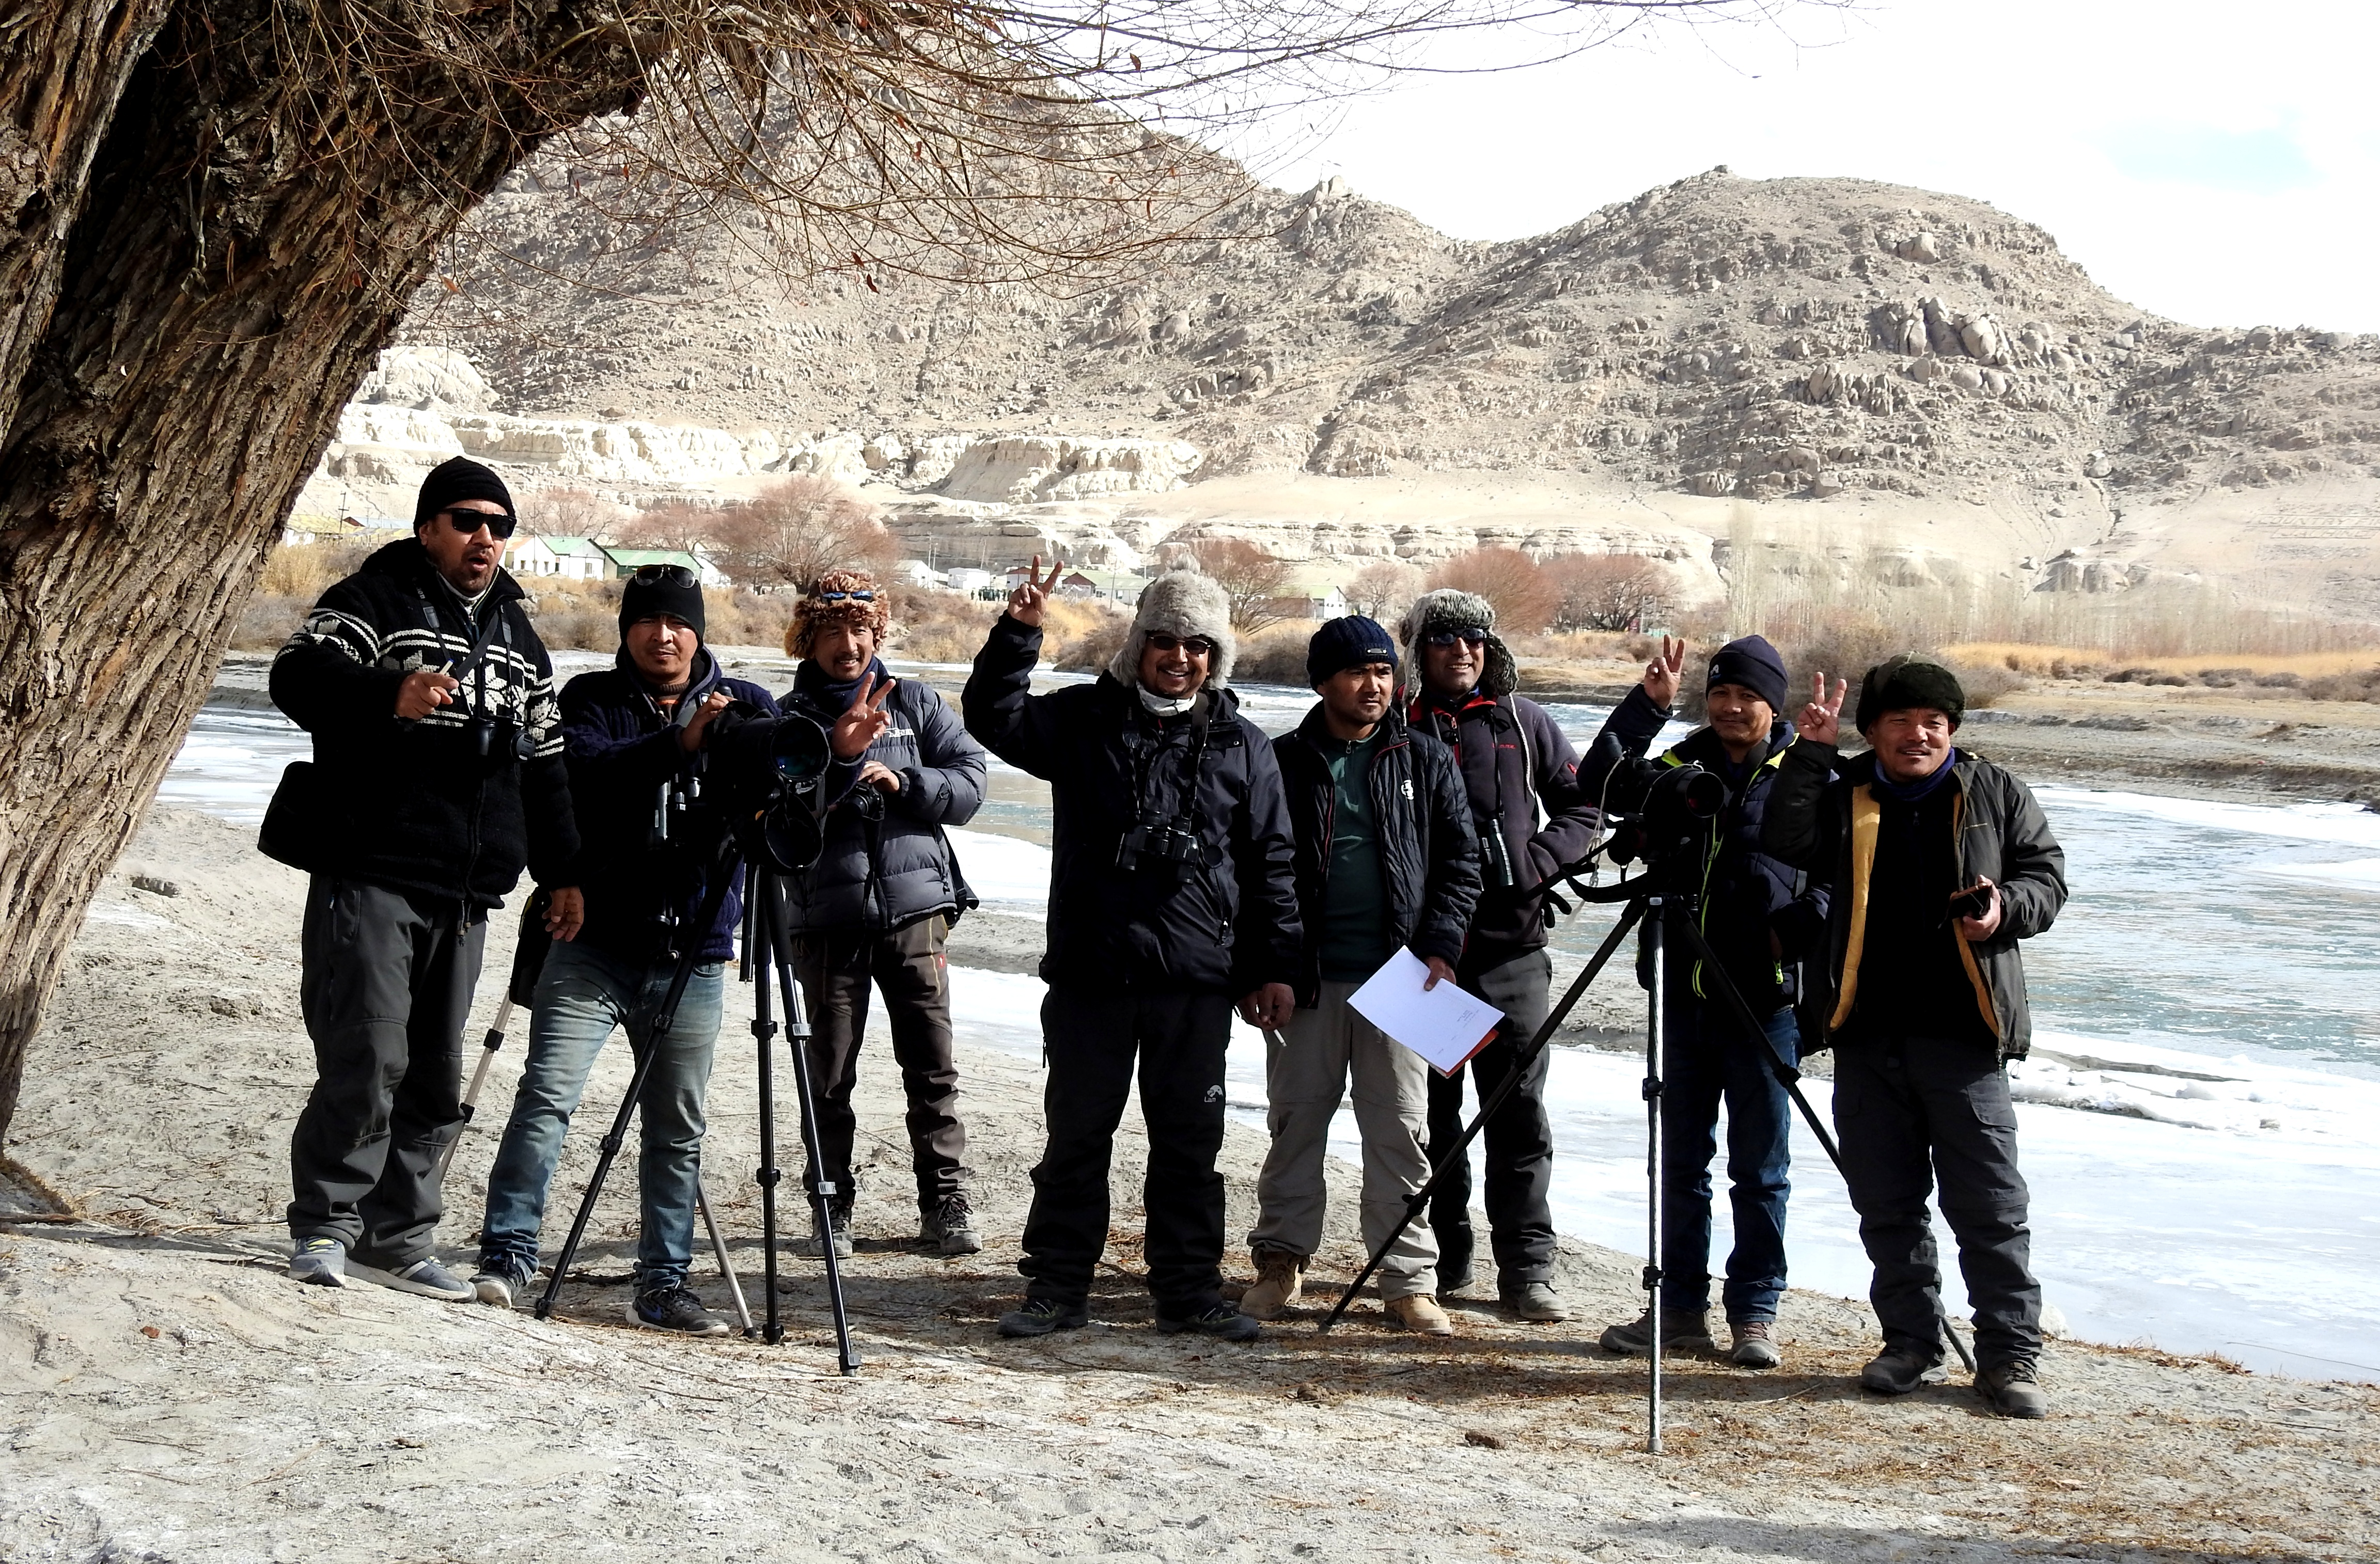 Birding in Ladakh an initiative by the founder members of Wildlife Conservation and Birds Club of Ladakh (WCBCL) for locals have done wonders in creating awareness about birds and conservation work in Ladakh.